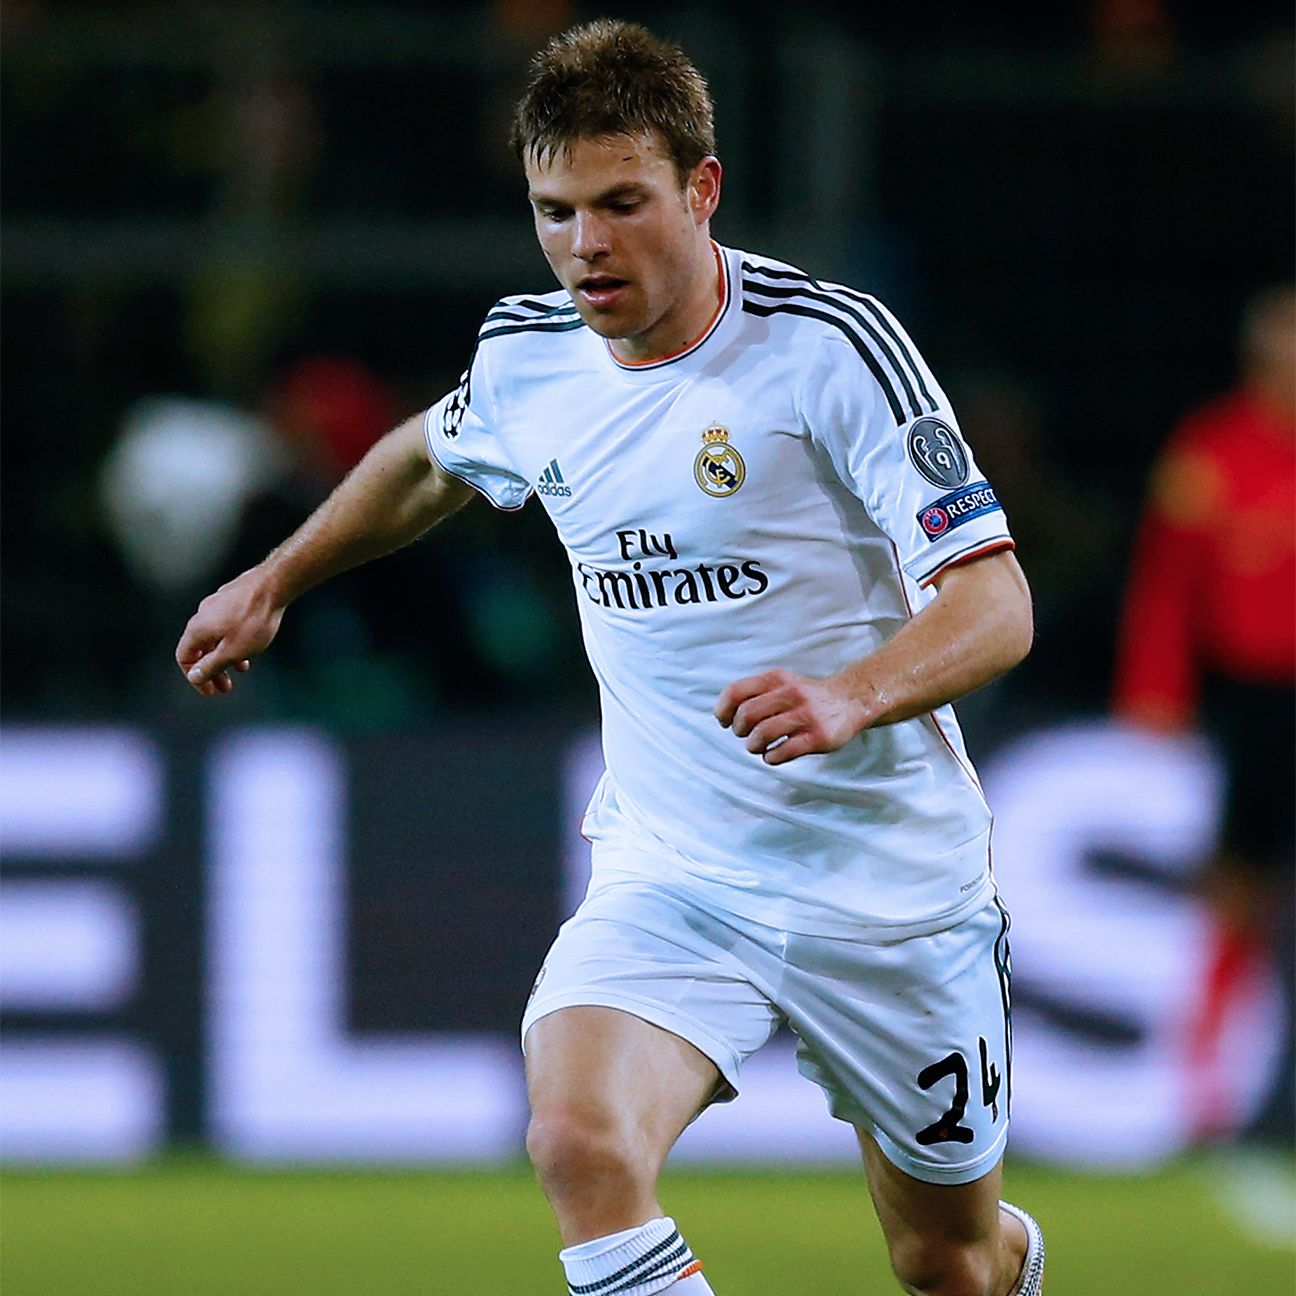 Asier Illarramendi has started a paltry three league matches this season for Real Madrid.